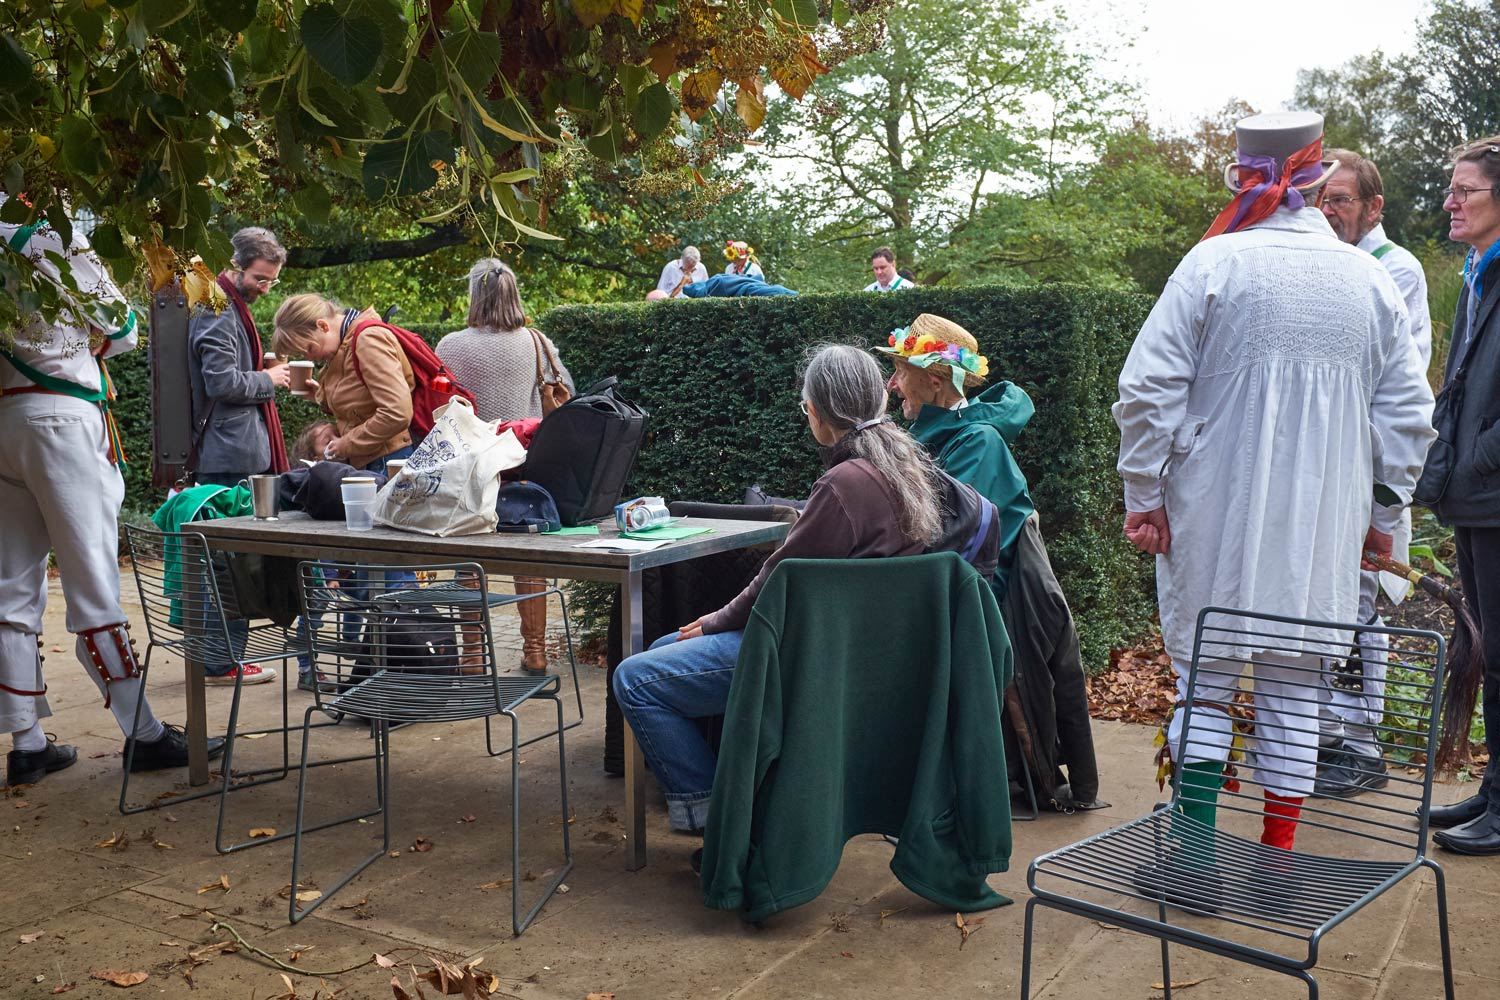 Morris dancers and others in conversation at Apple Day at the Botanic Gardens in Cambridge